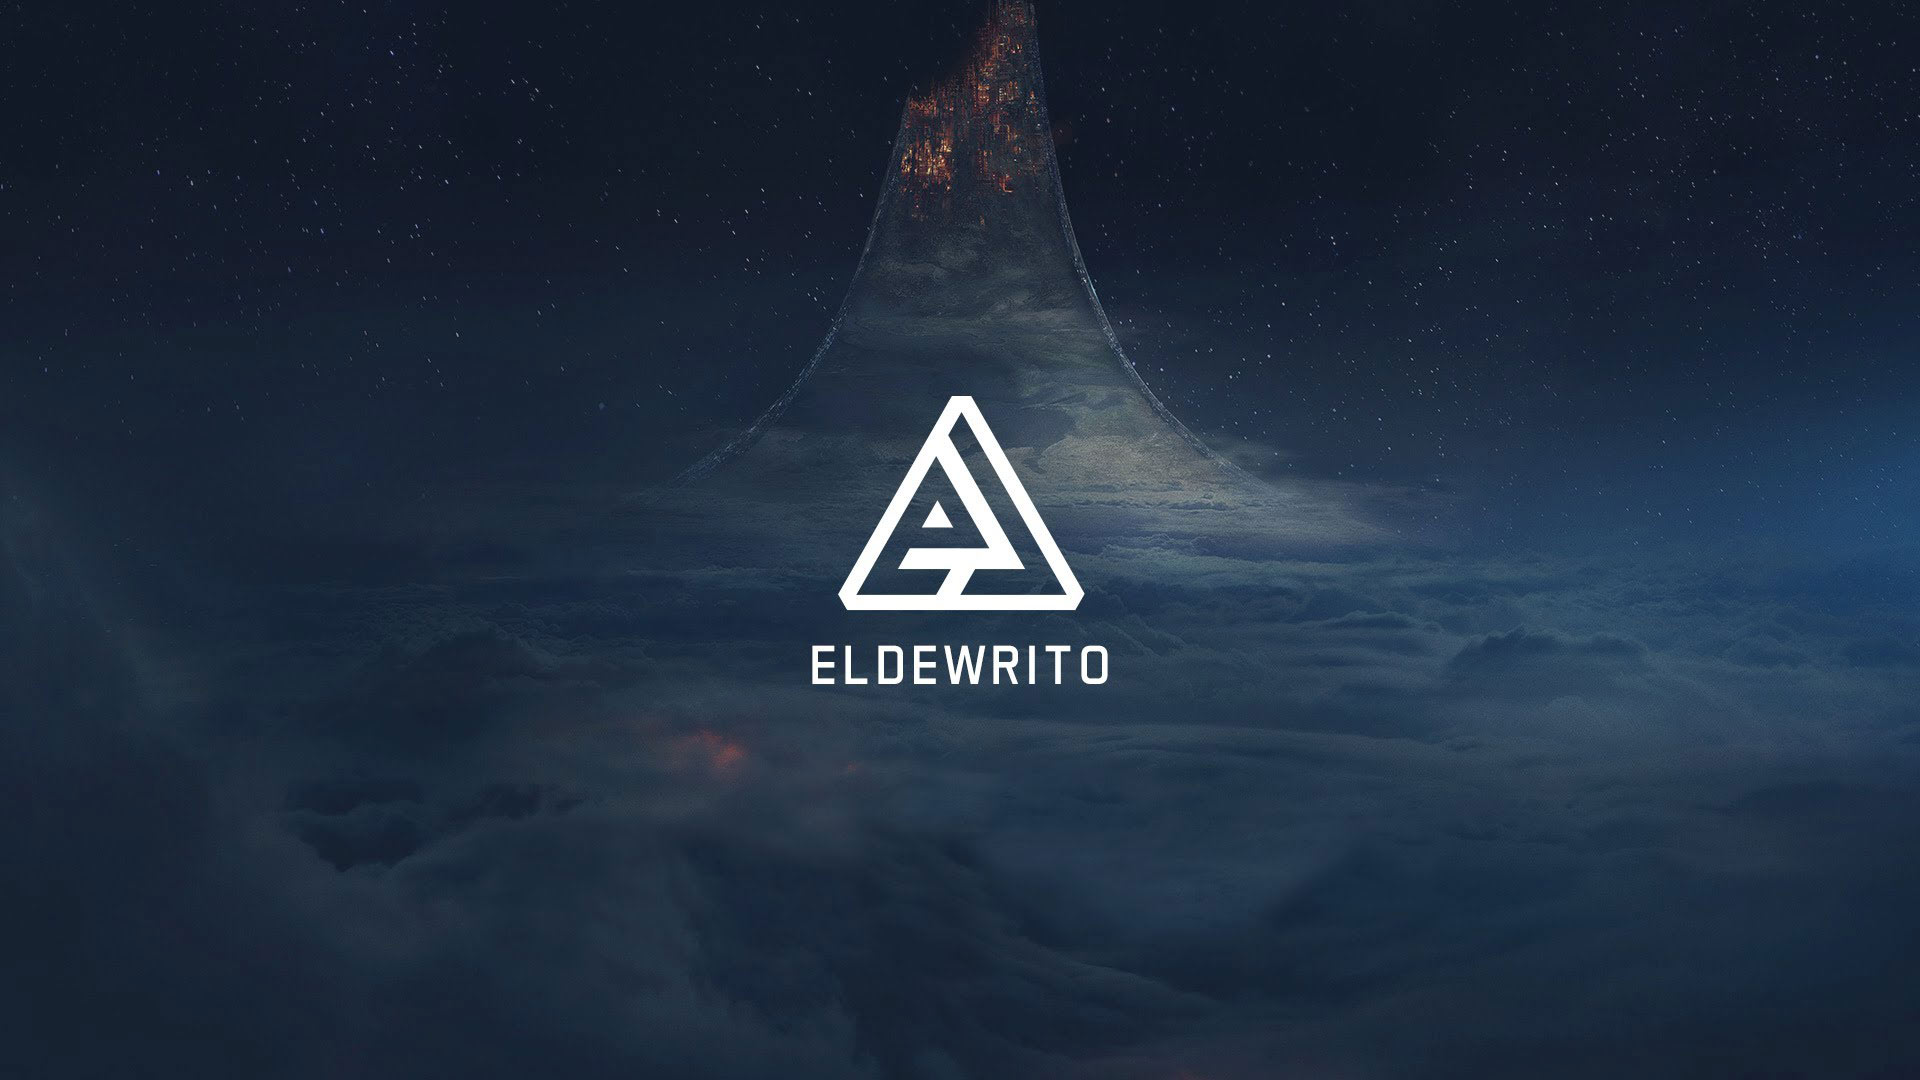 Microsoft Forced To Shut Down Eldewrito Halo Online Mod But